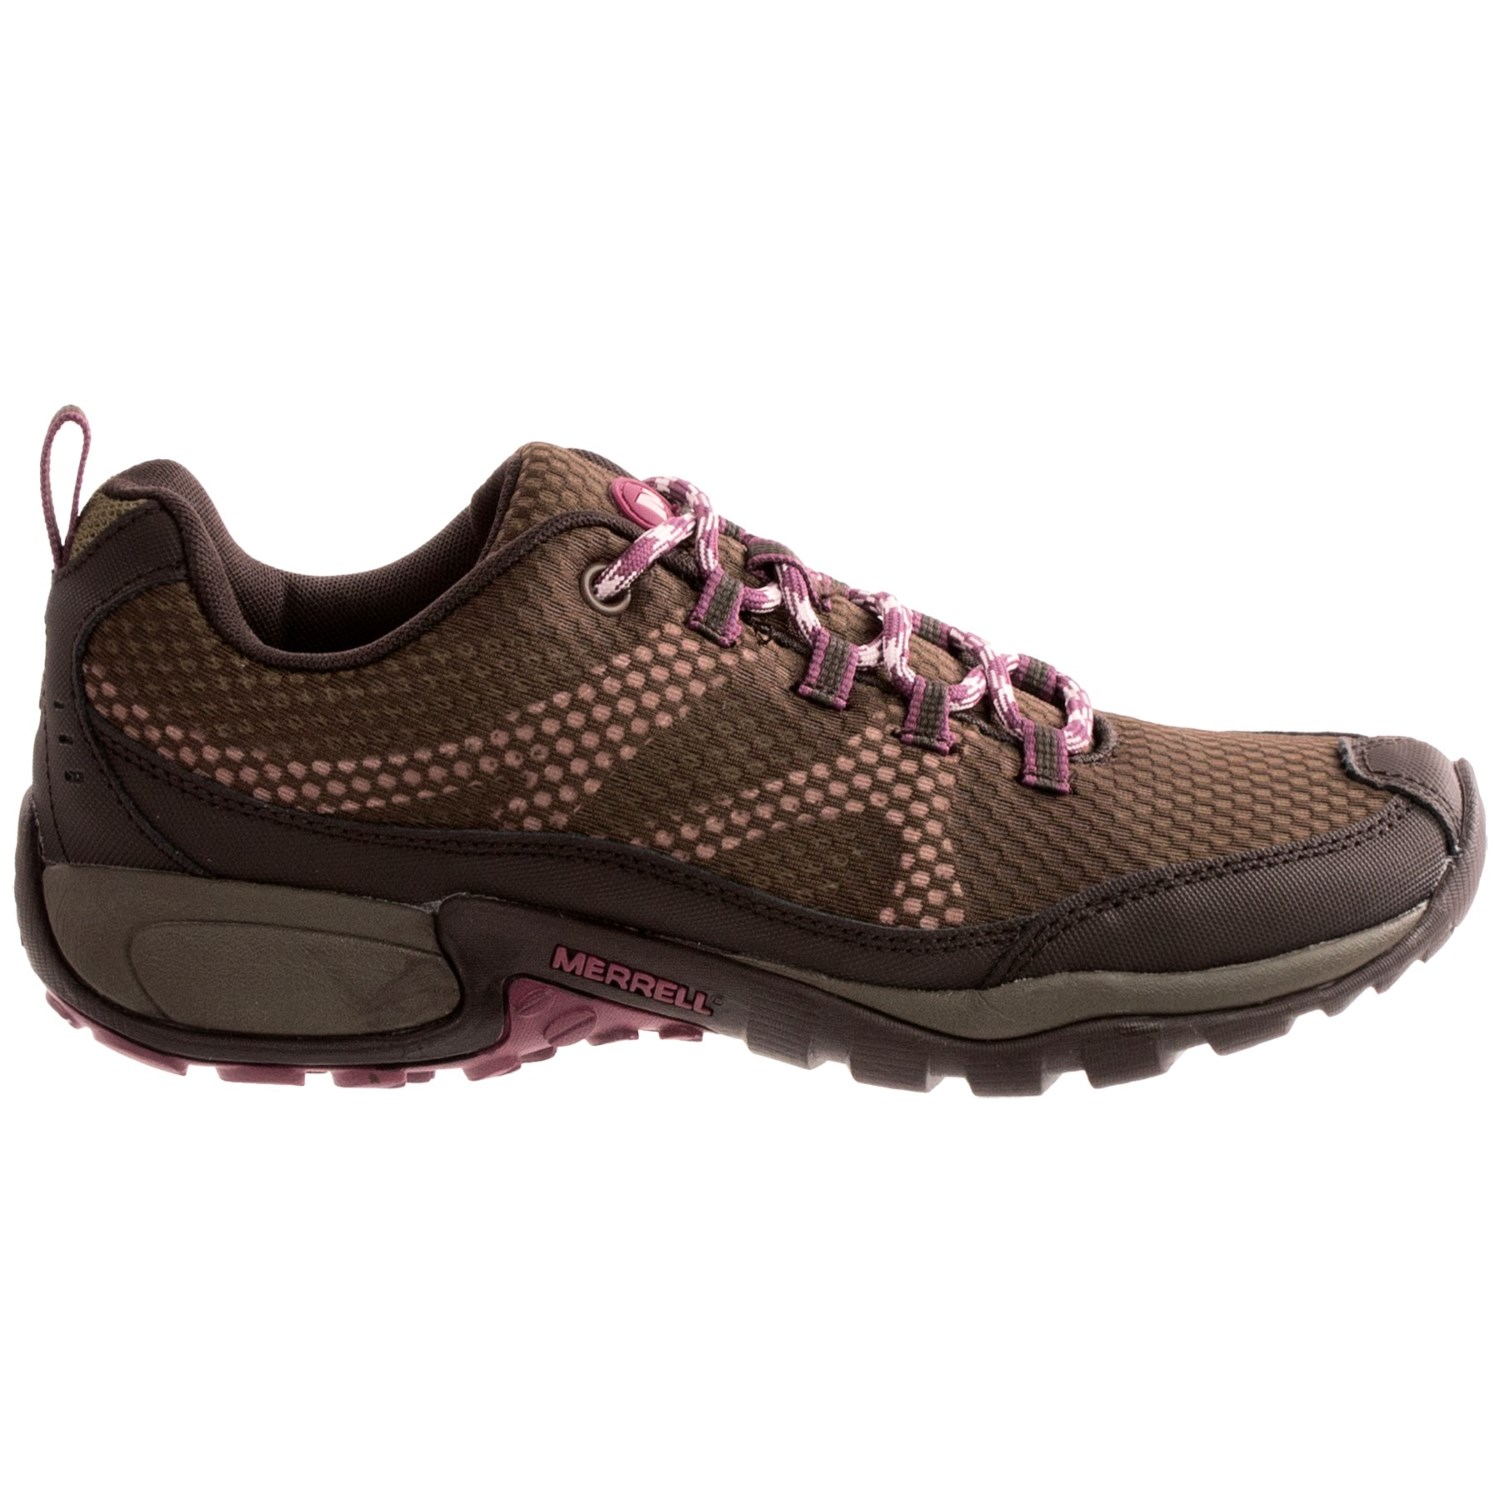 Merrell Fluorecein Hiking Shoes Waterproof For Women